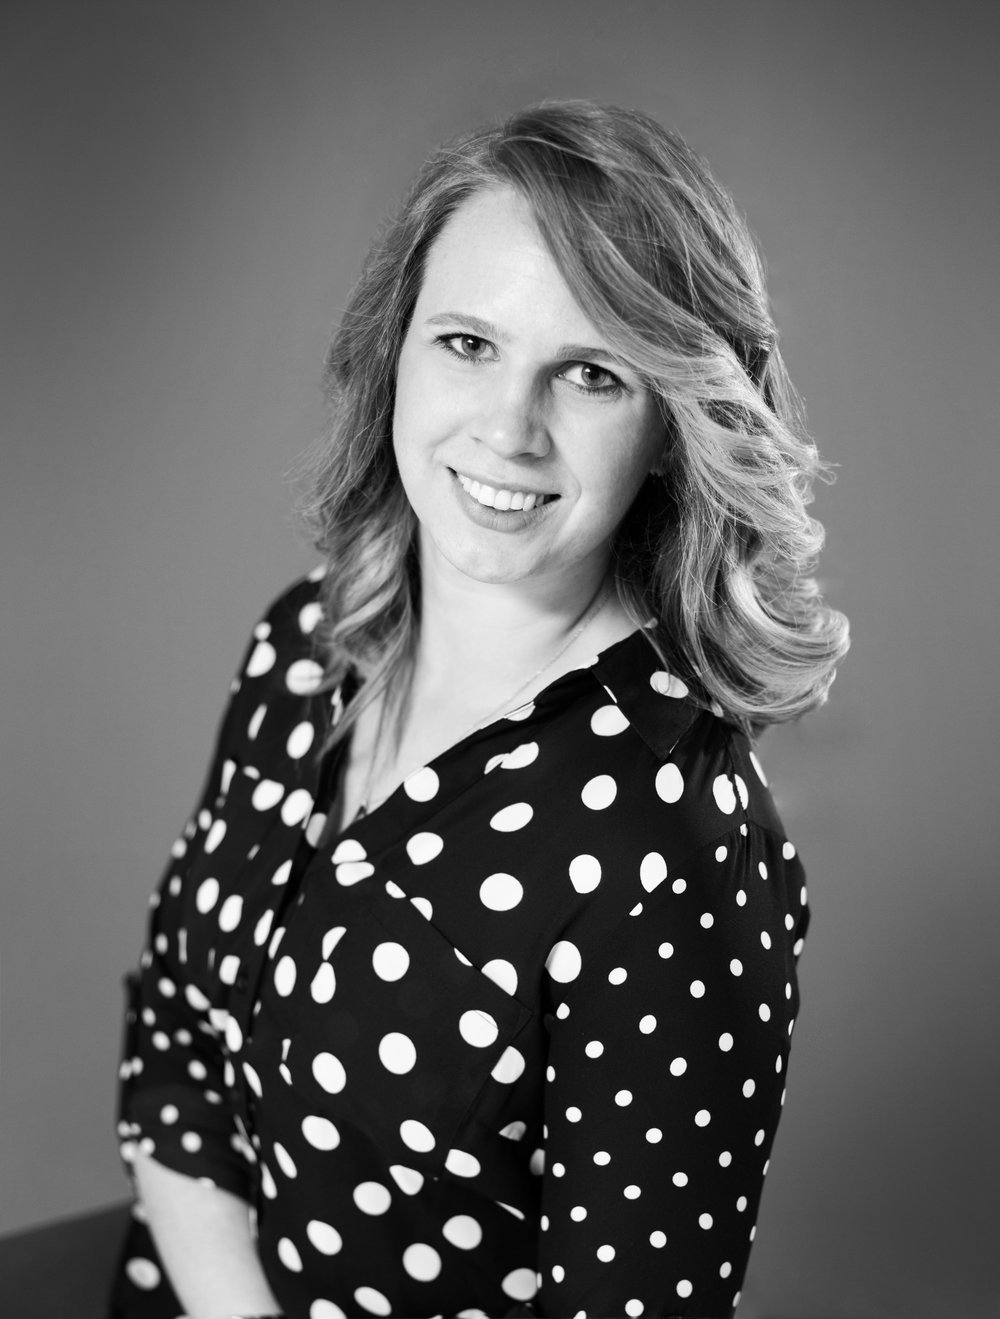 Courtney, Client Director